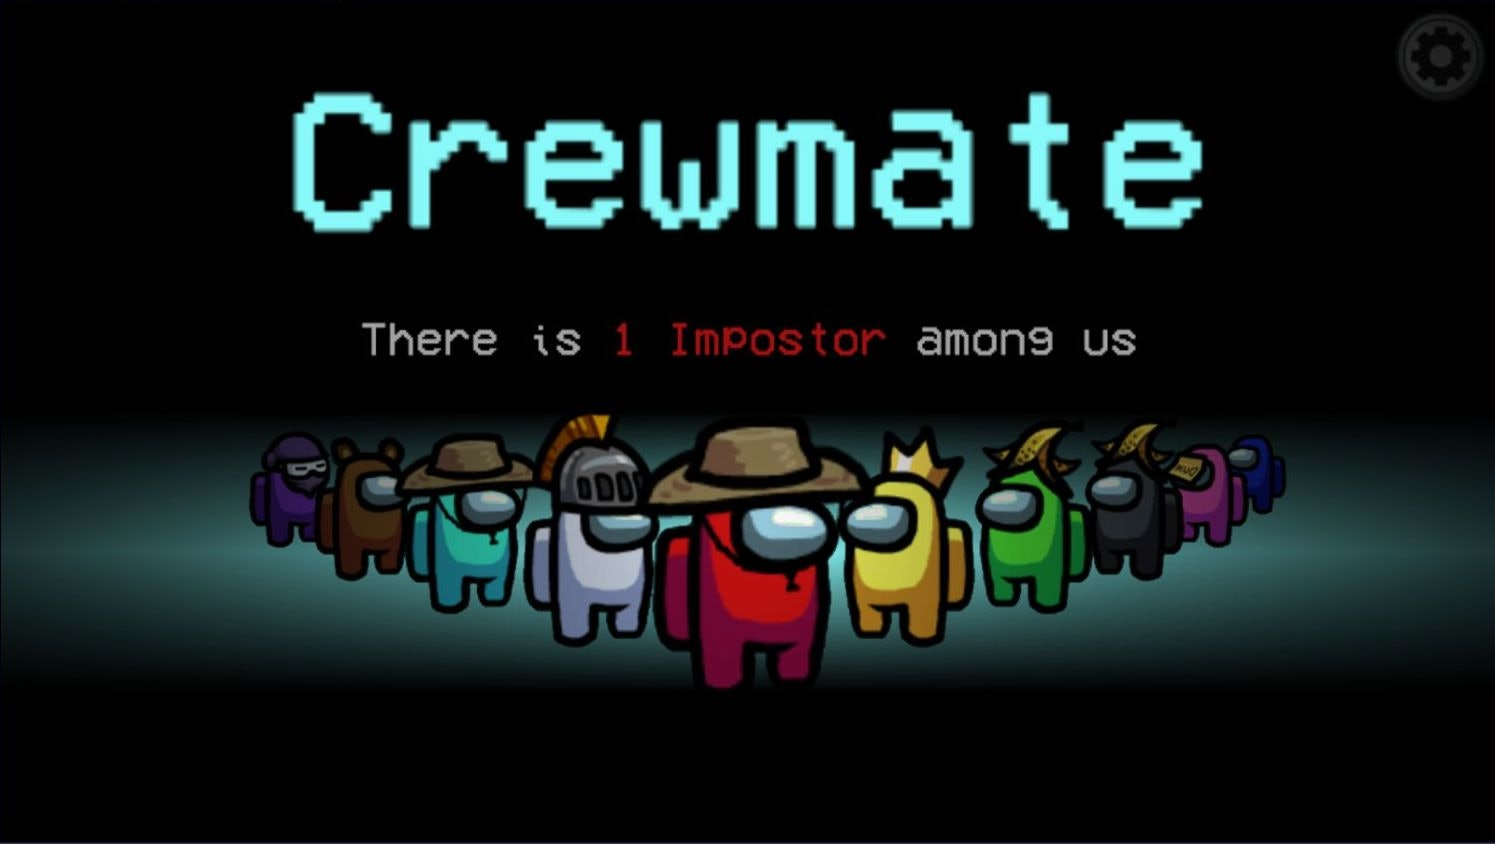 Among Us' crewmate guide: 5 tips to outsmart the imposter